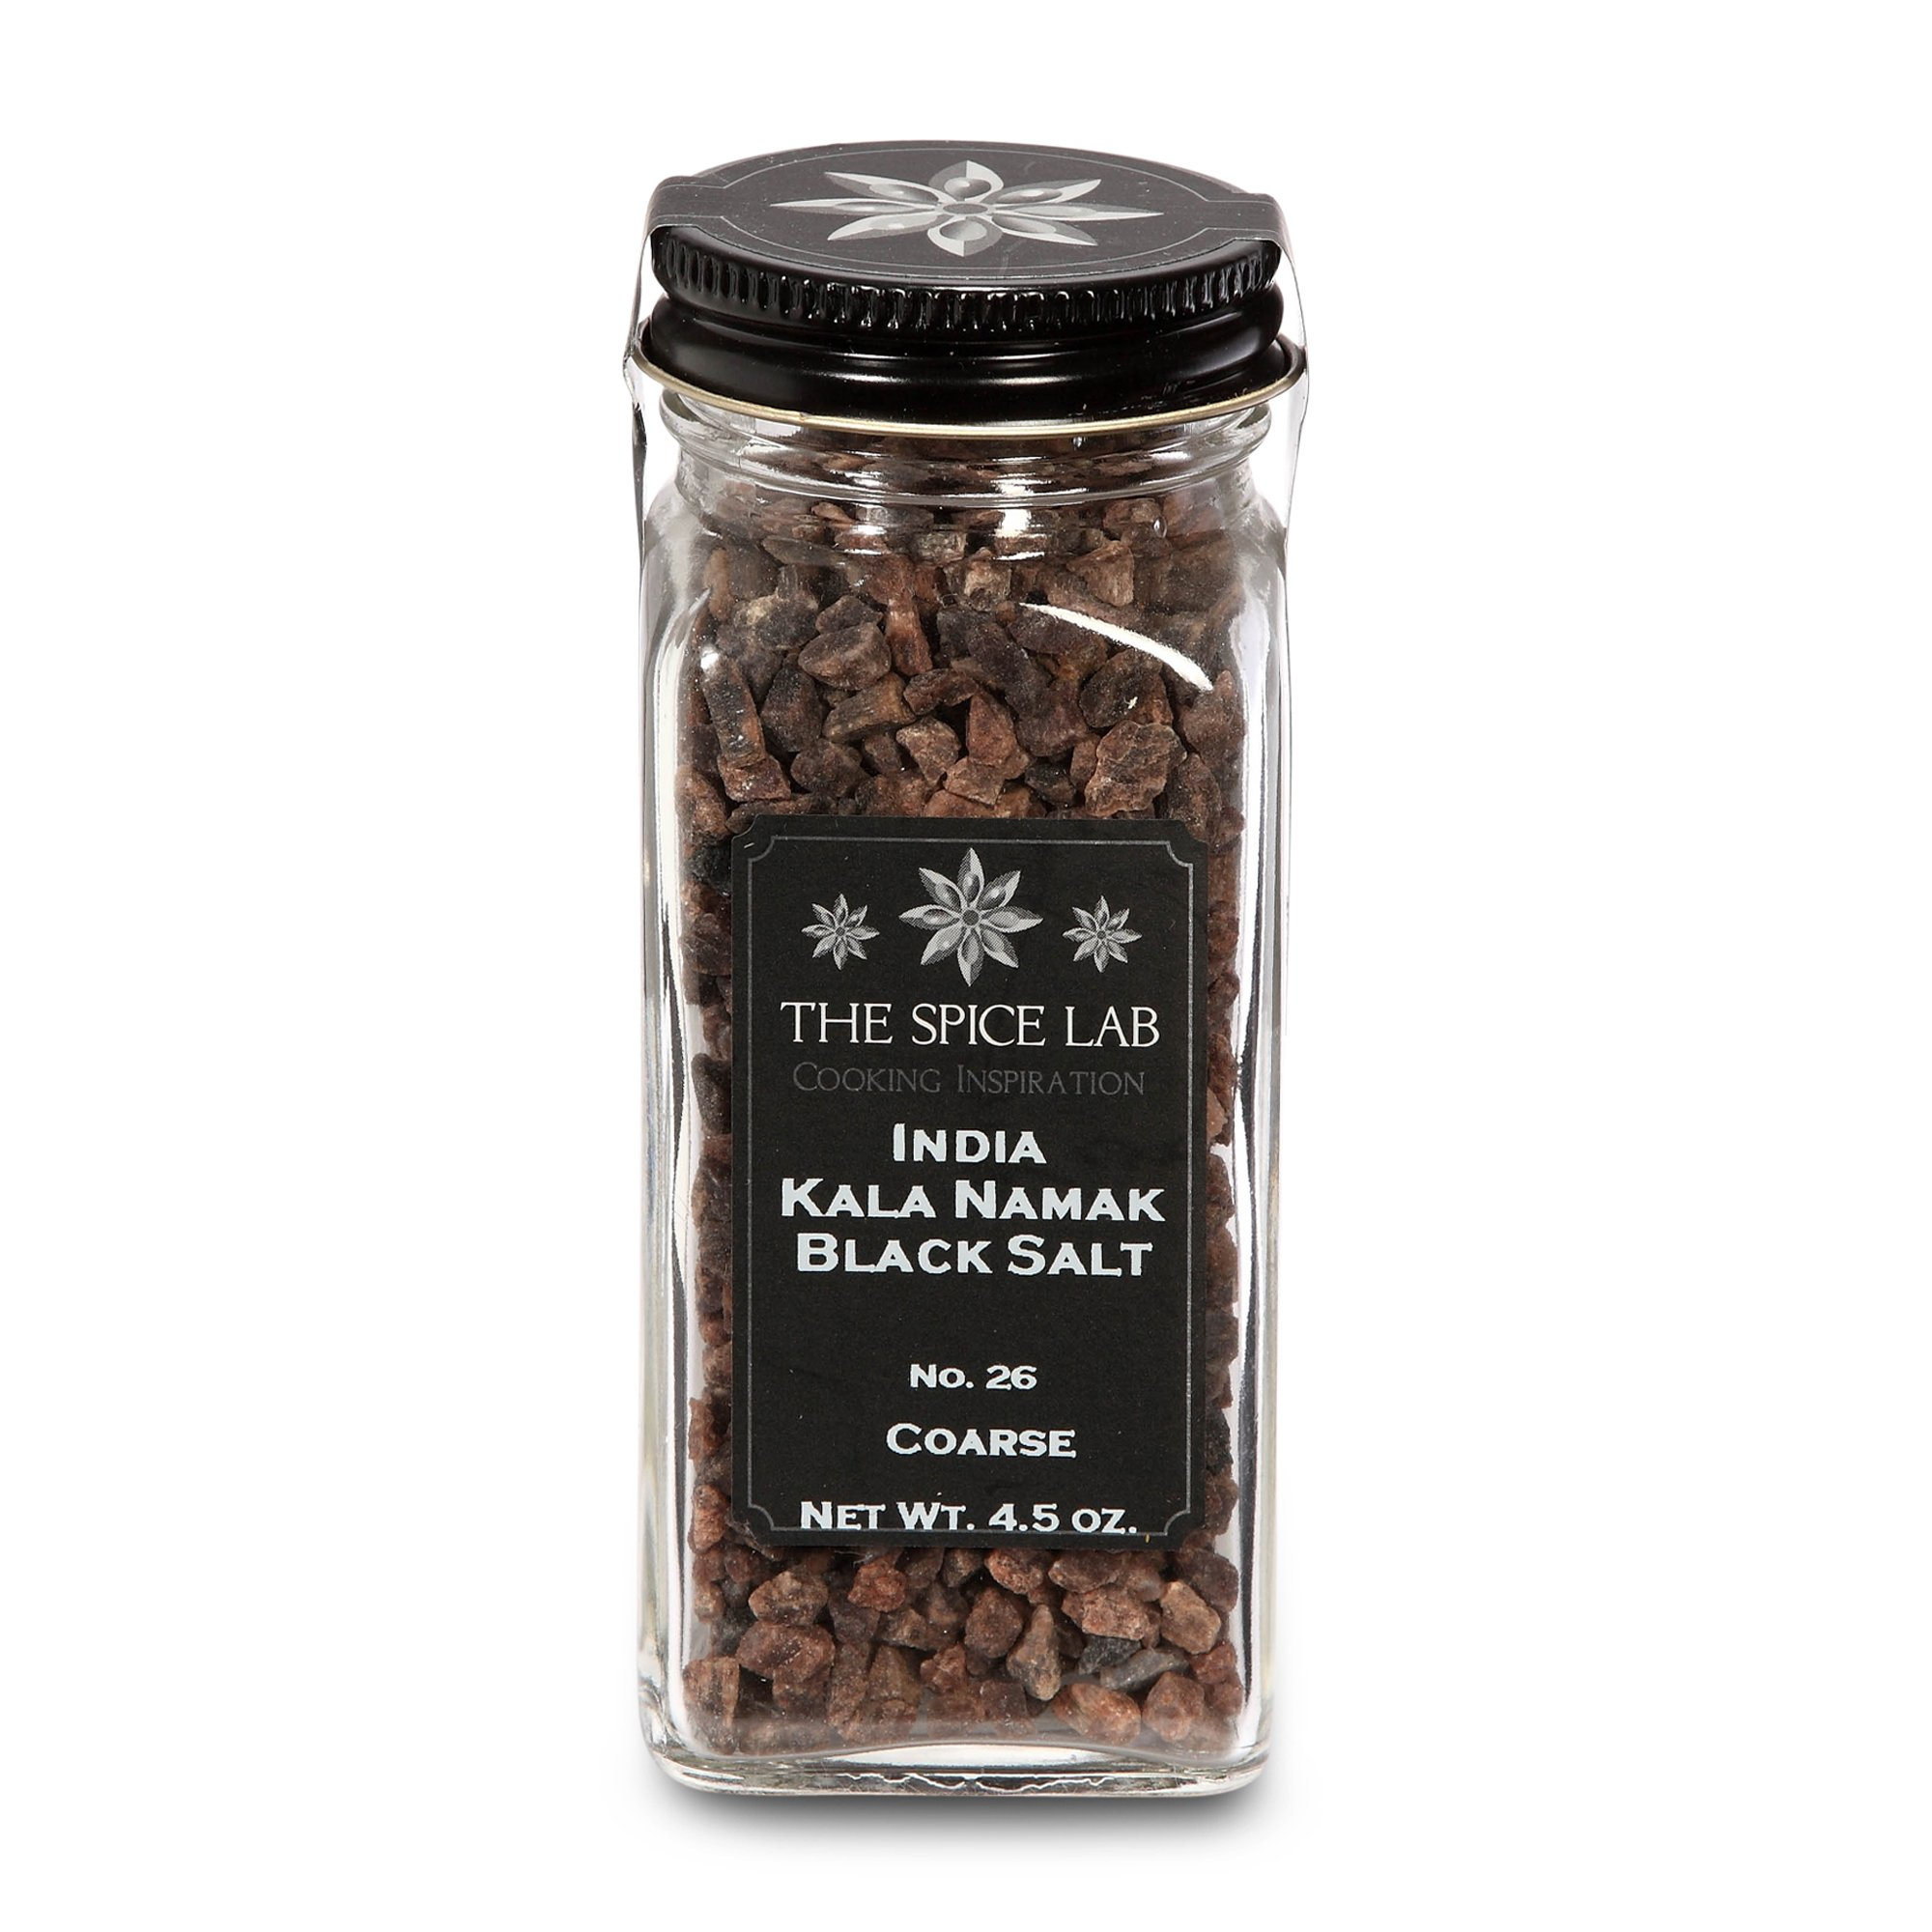 The Spice Lab Kala Namak Himalayan Black Crystal Indian Salt - Mineral Enriched Kosher Gluten-Free All Natural Salt - Coarse - French Jar by The Spice Lab